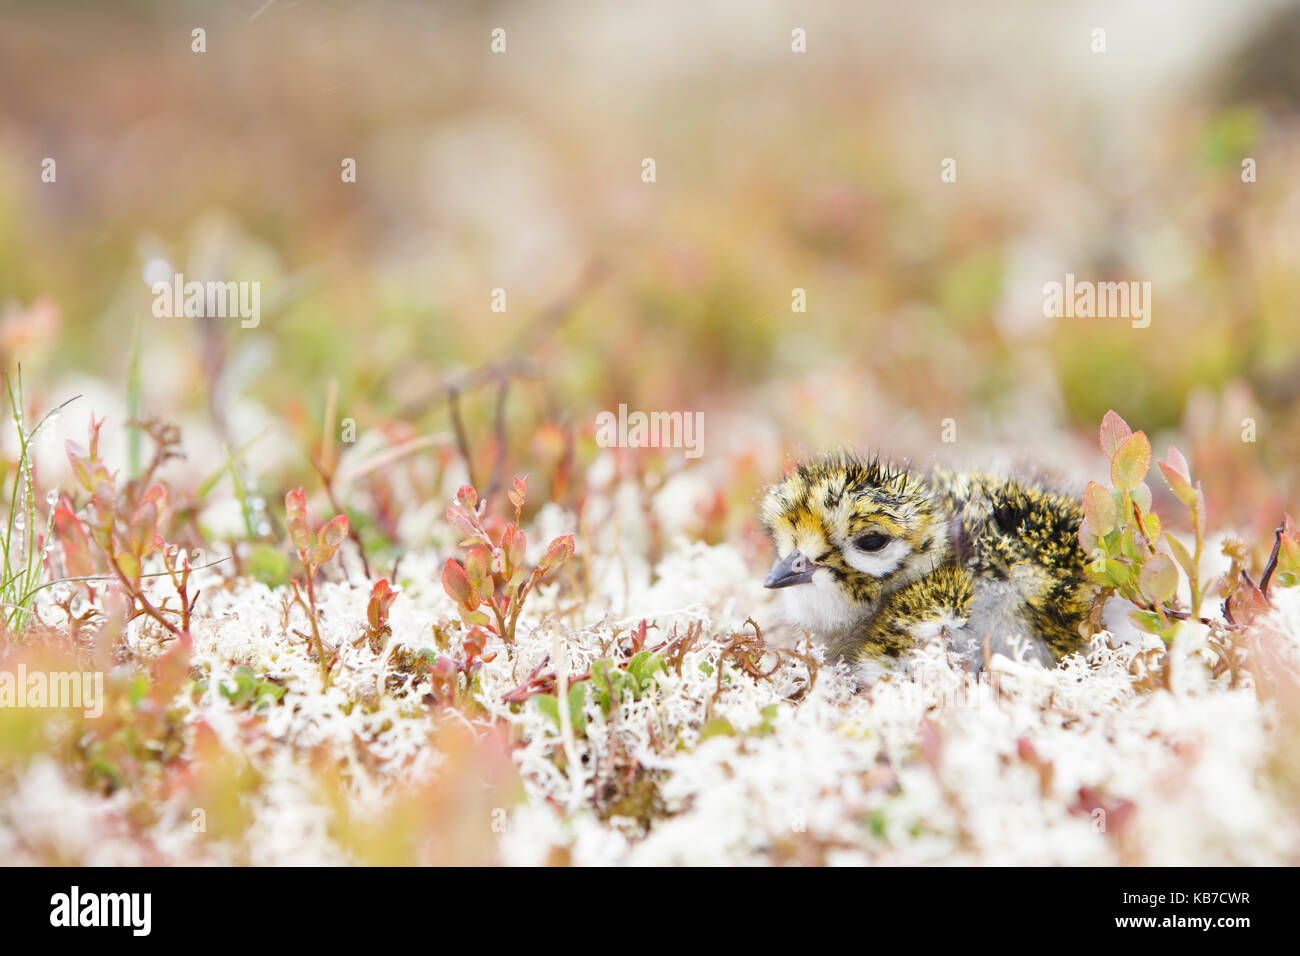 European Golden Plover (Pluvialis apricaria) young hiding in vegetation, Norway, Sor-Trondelag - Stock Image